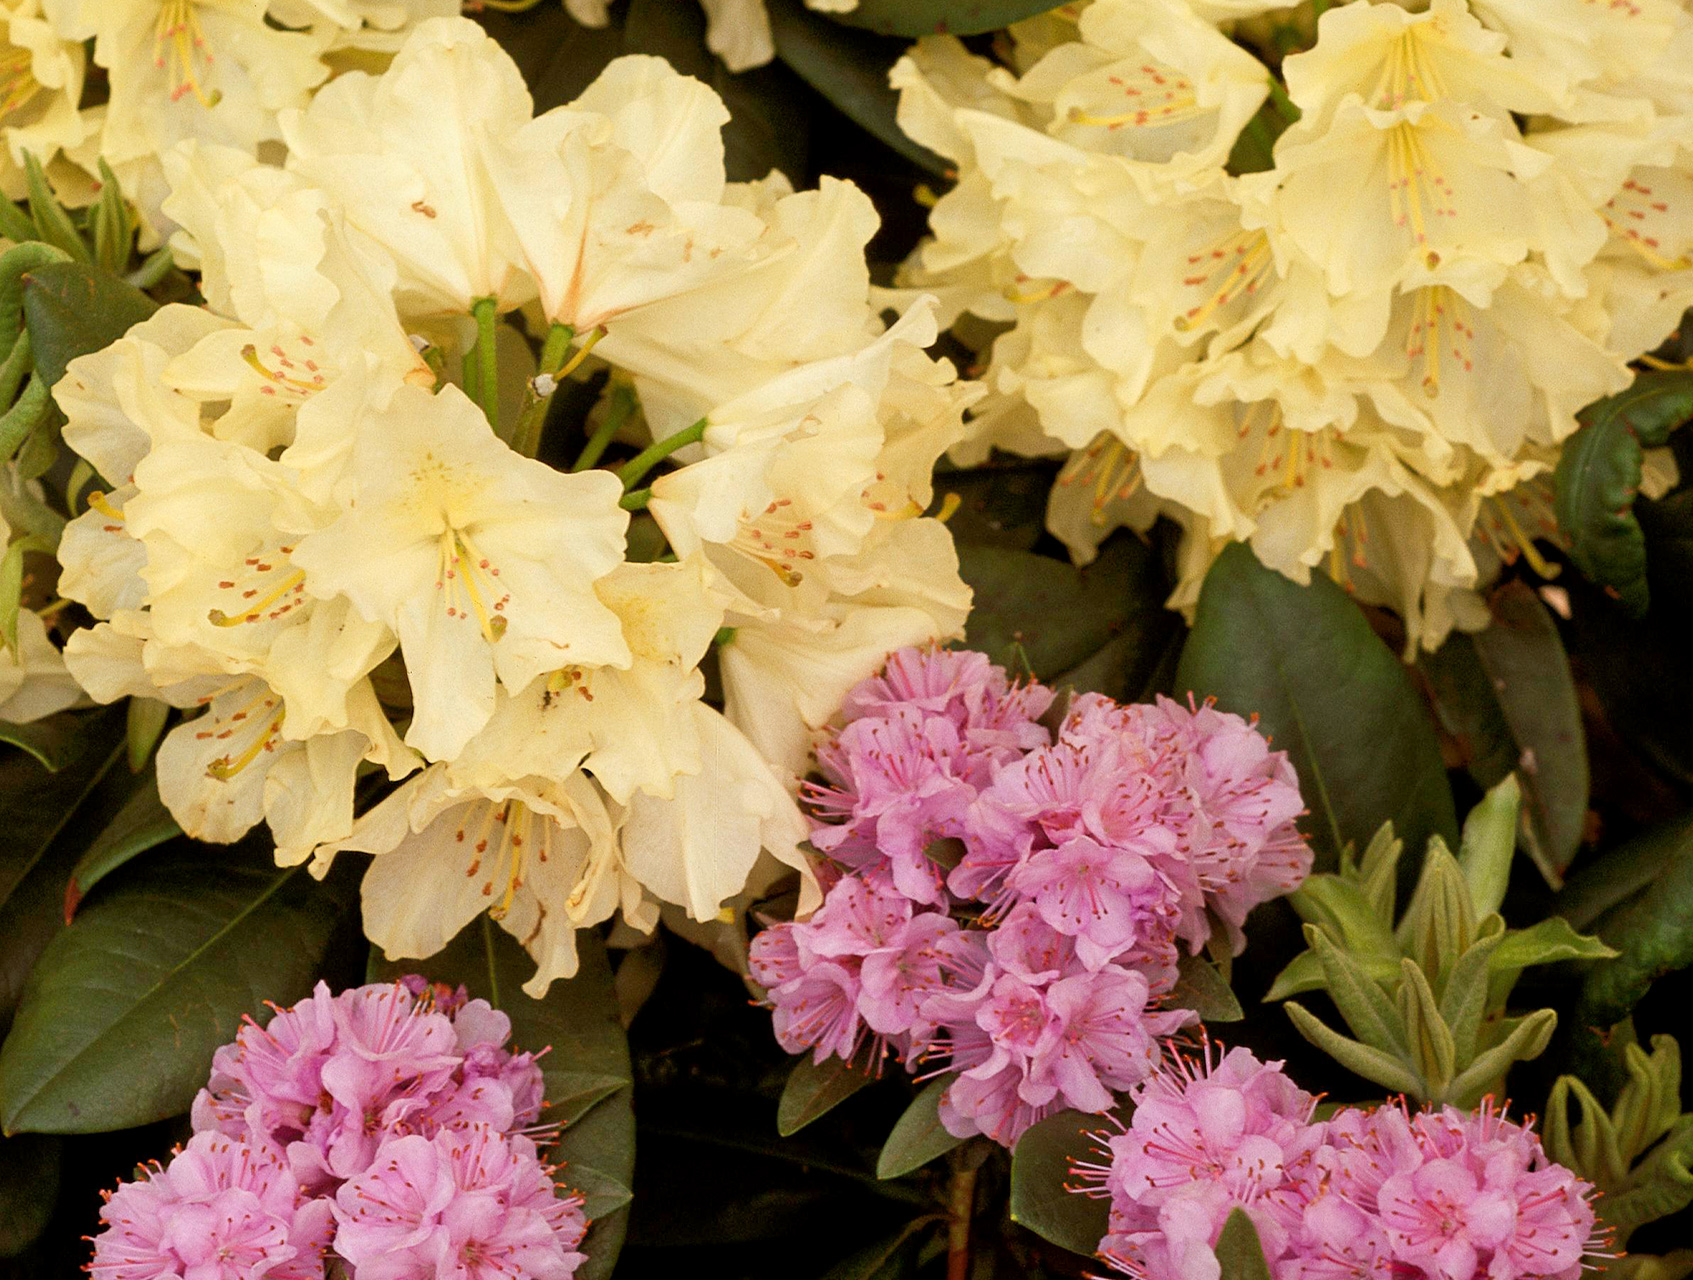 mauve Rhododendron 'Faisa' with Rhododendron 'Capistrano'